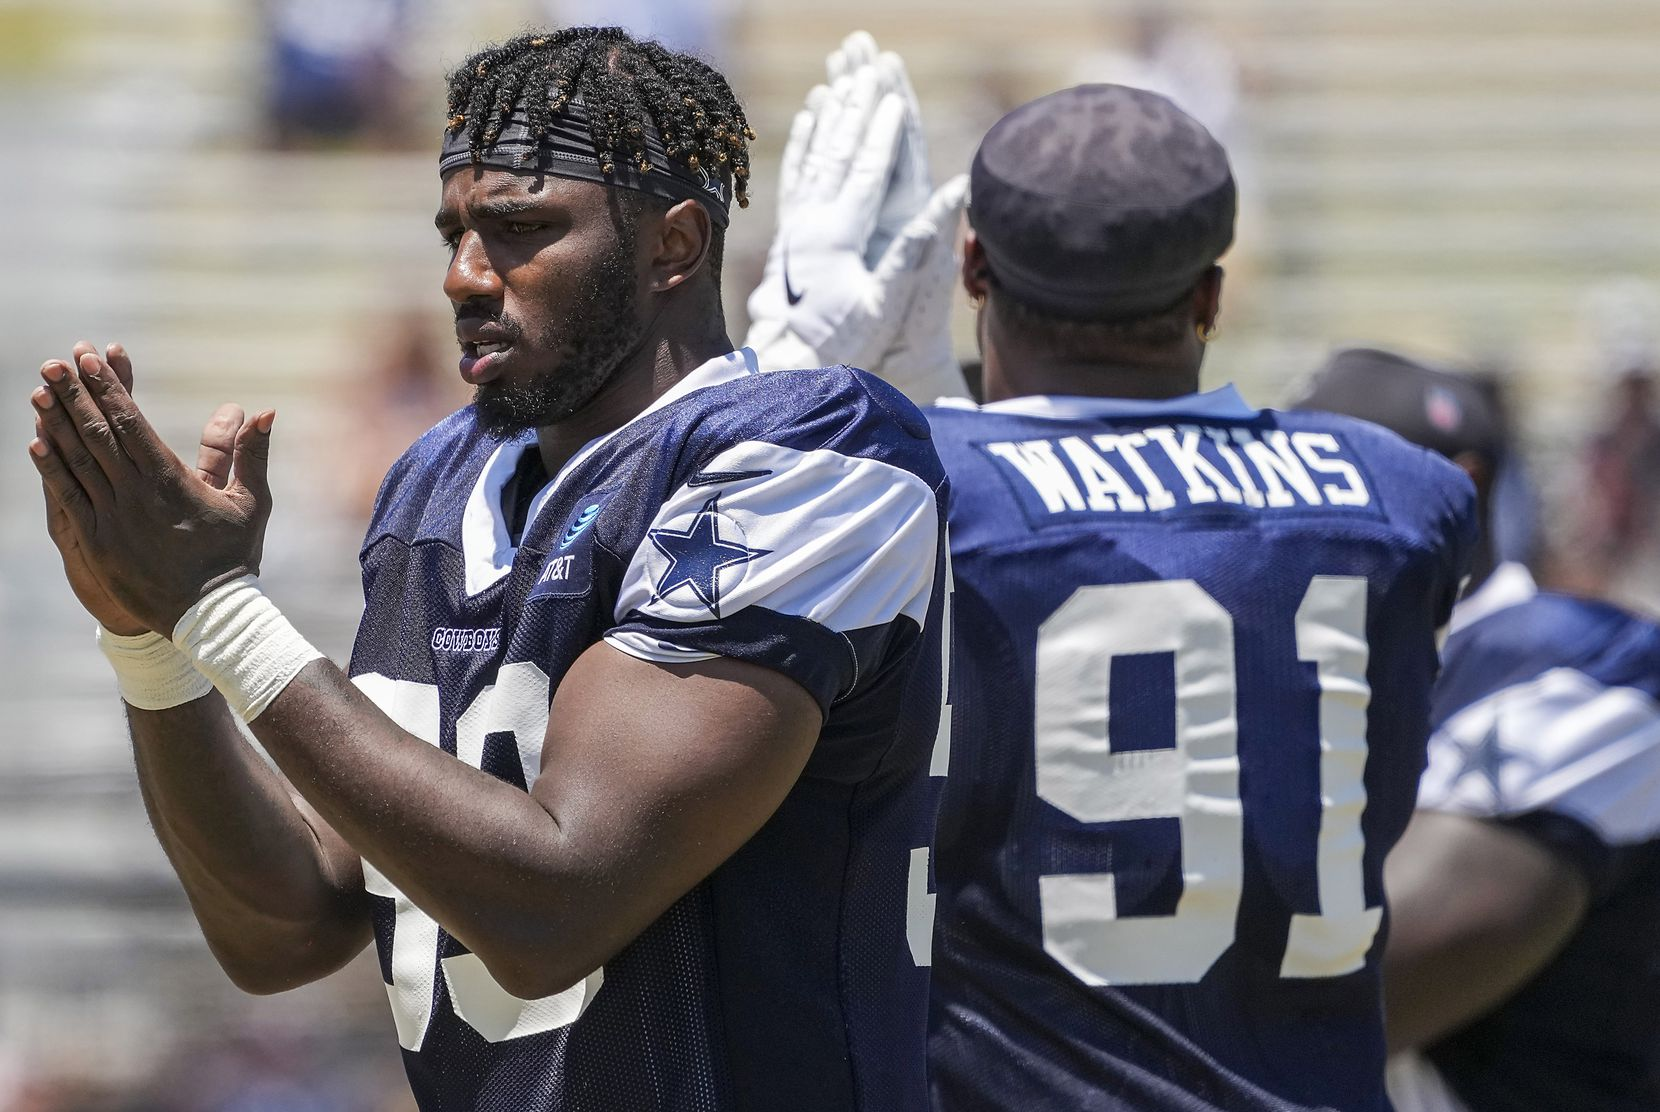 Dallas Cowboys defensive end Tarell Basham (93) and defensive end Carlos Watkins (91) signal a play during a practice at training camp on Wednesday, July 28, 2021, in Oxnard, Calif.